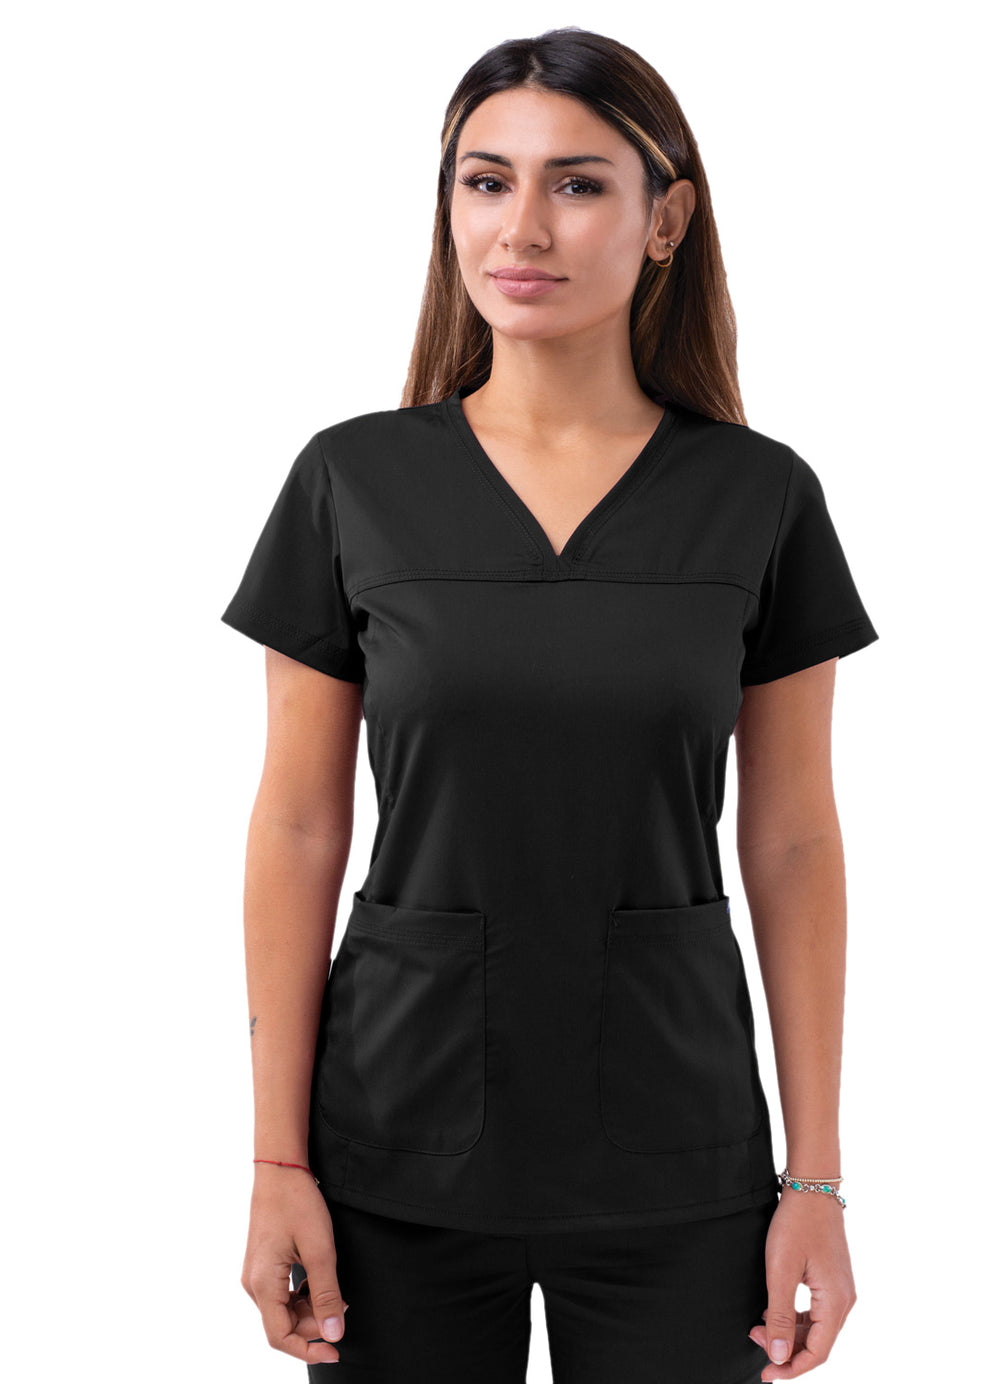 Adar Sweetheart V-neck Scrub Top - My Favorite Scrubs